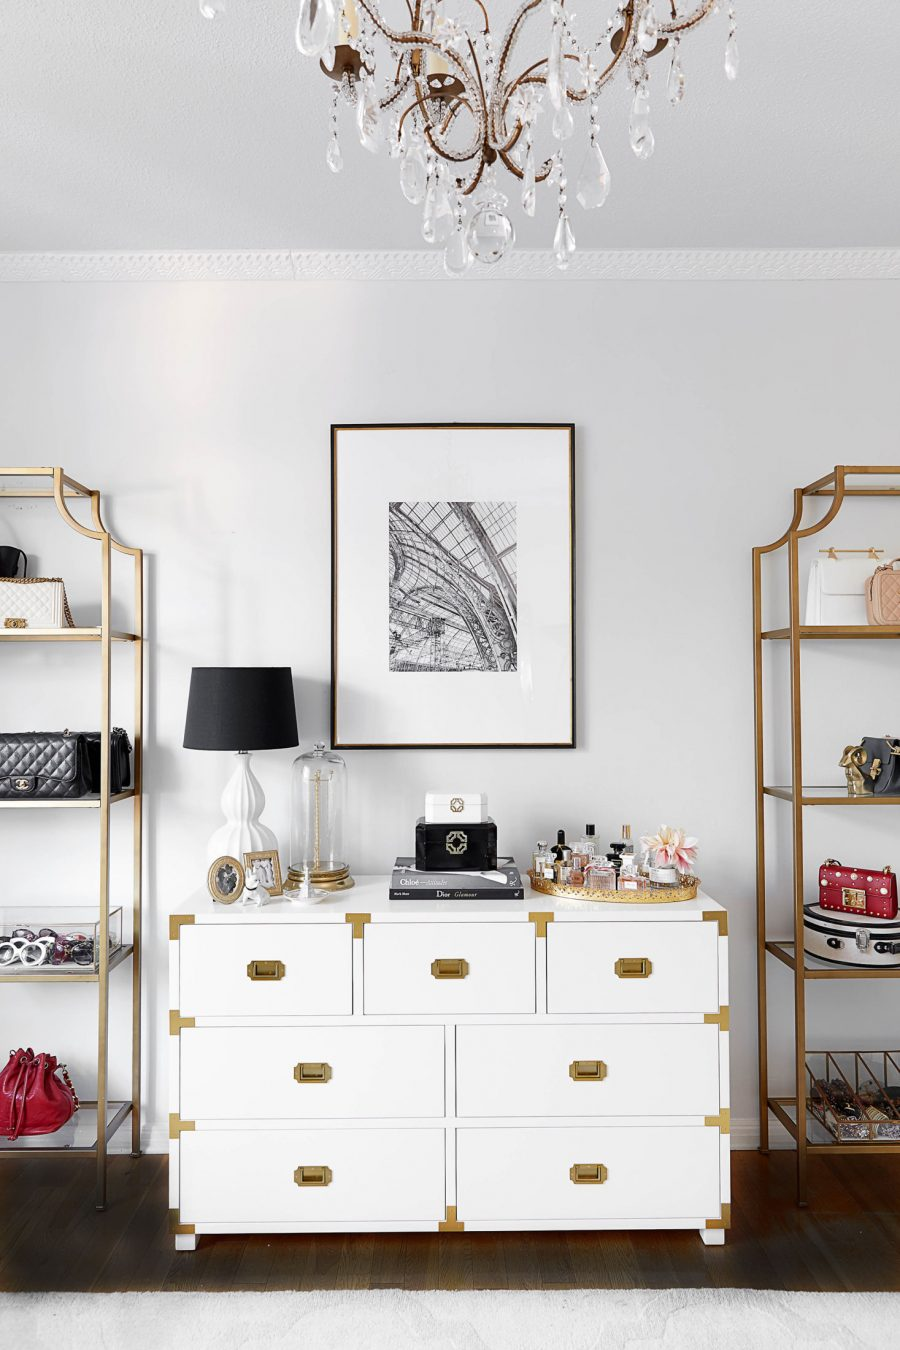 Pottery Barn Kids Gemma Campaign Extra Wide Dresser $1195 vs Home Decorators Collection Chatham 7-Drawer White Dresser $649 white campaign dresser look for less copycatchic luxe living for less budget home decor and design daily finds